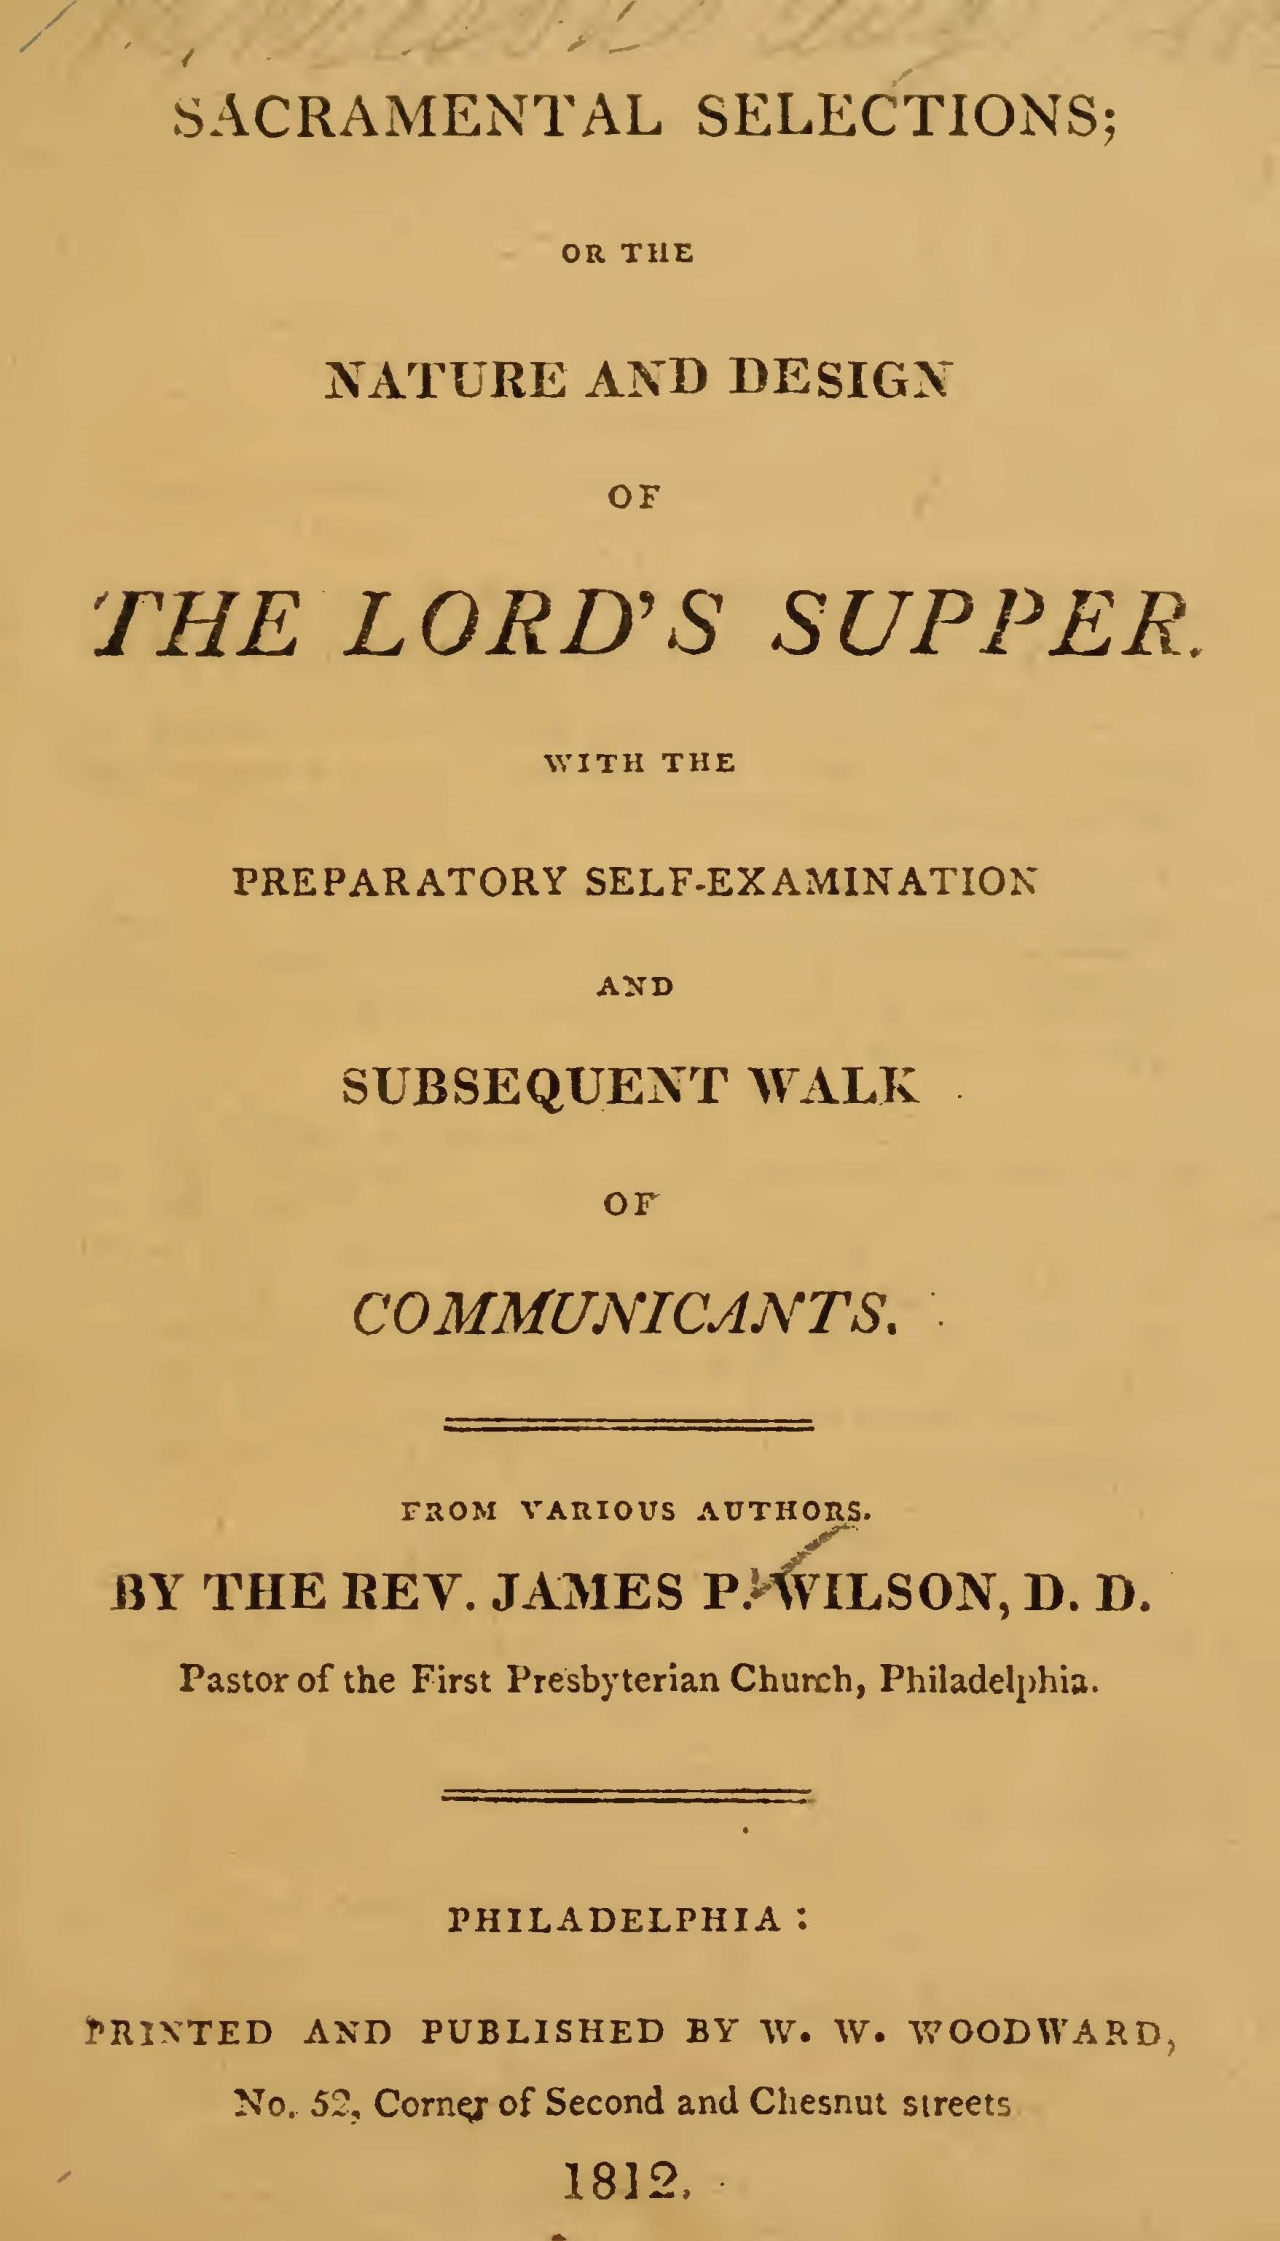 Wilson, Sr., James Patriot, Sacramental Selections Title Page.jpg